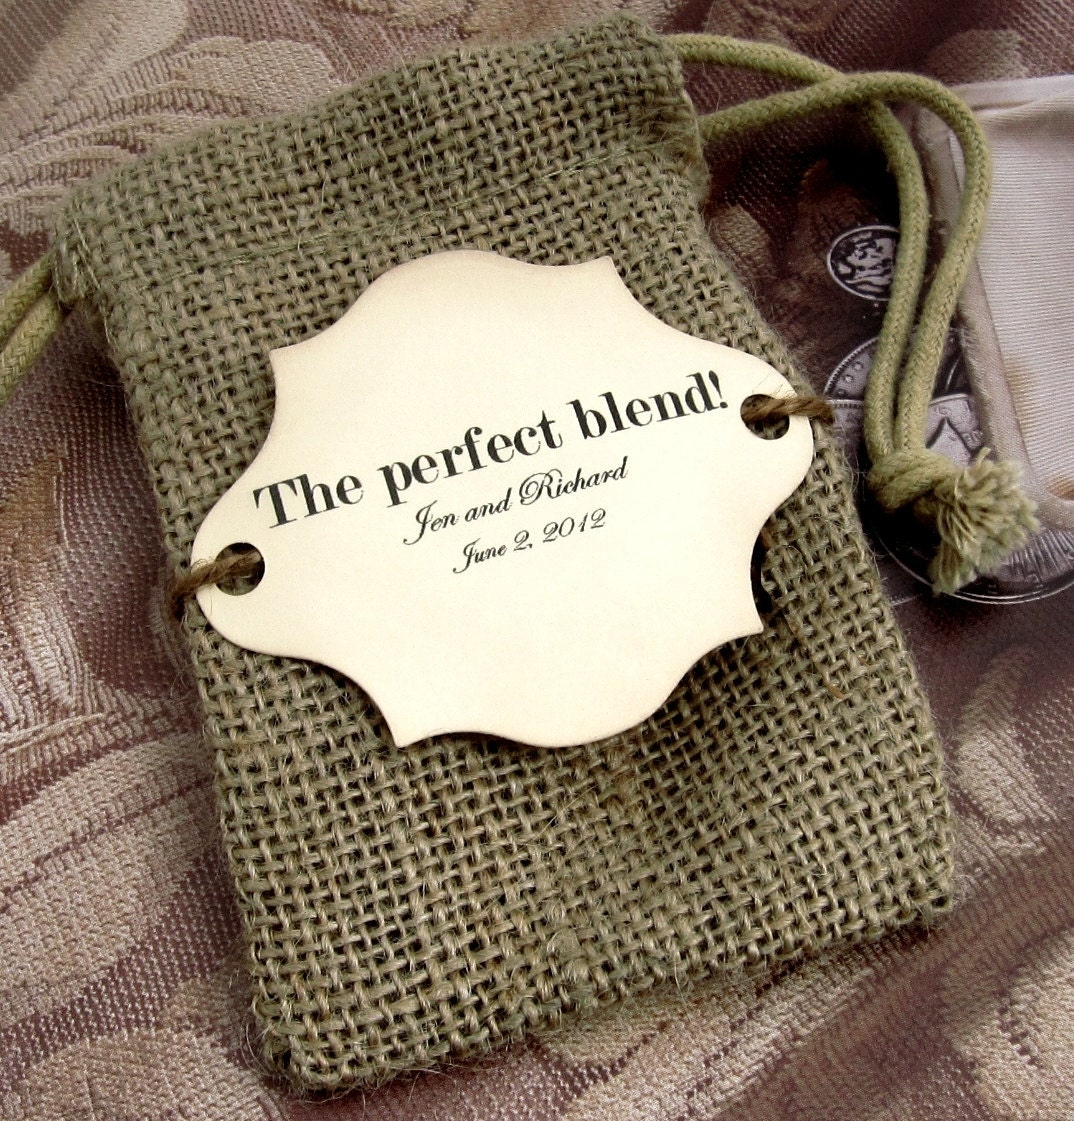 Wedding Gift Bags Etsy : 10 Burlap Wedding Favor Bags The perfect blend by CottageCandies